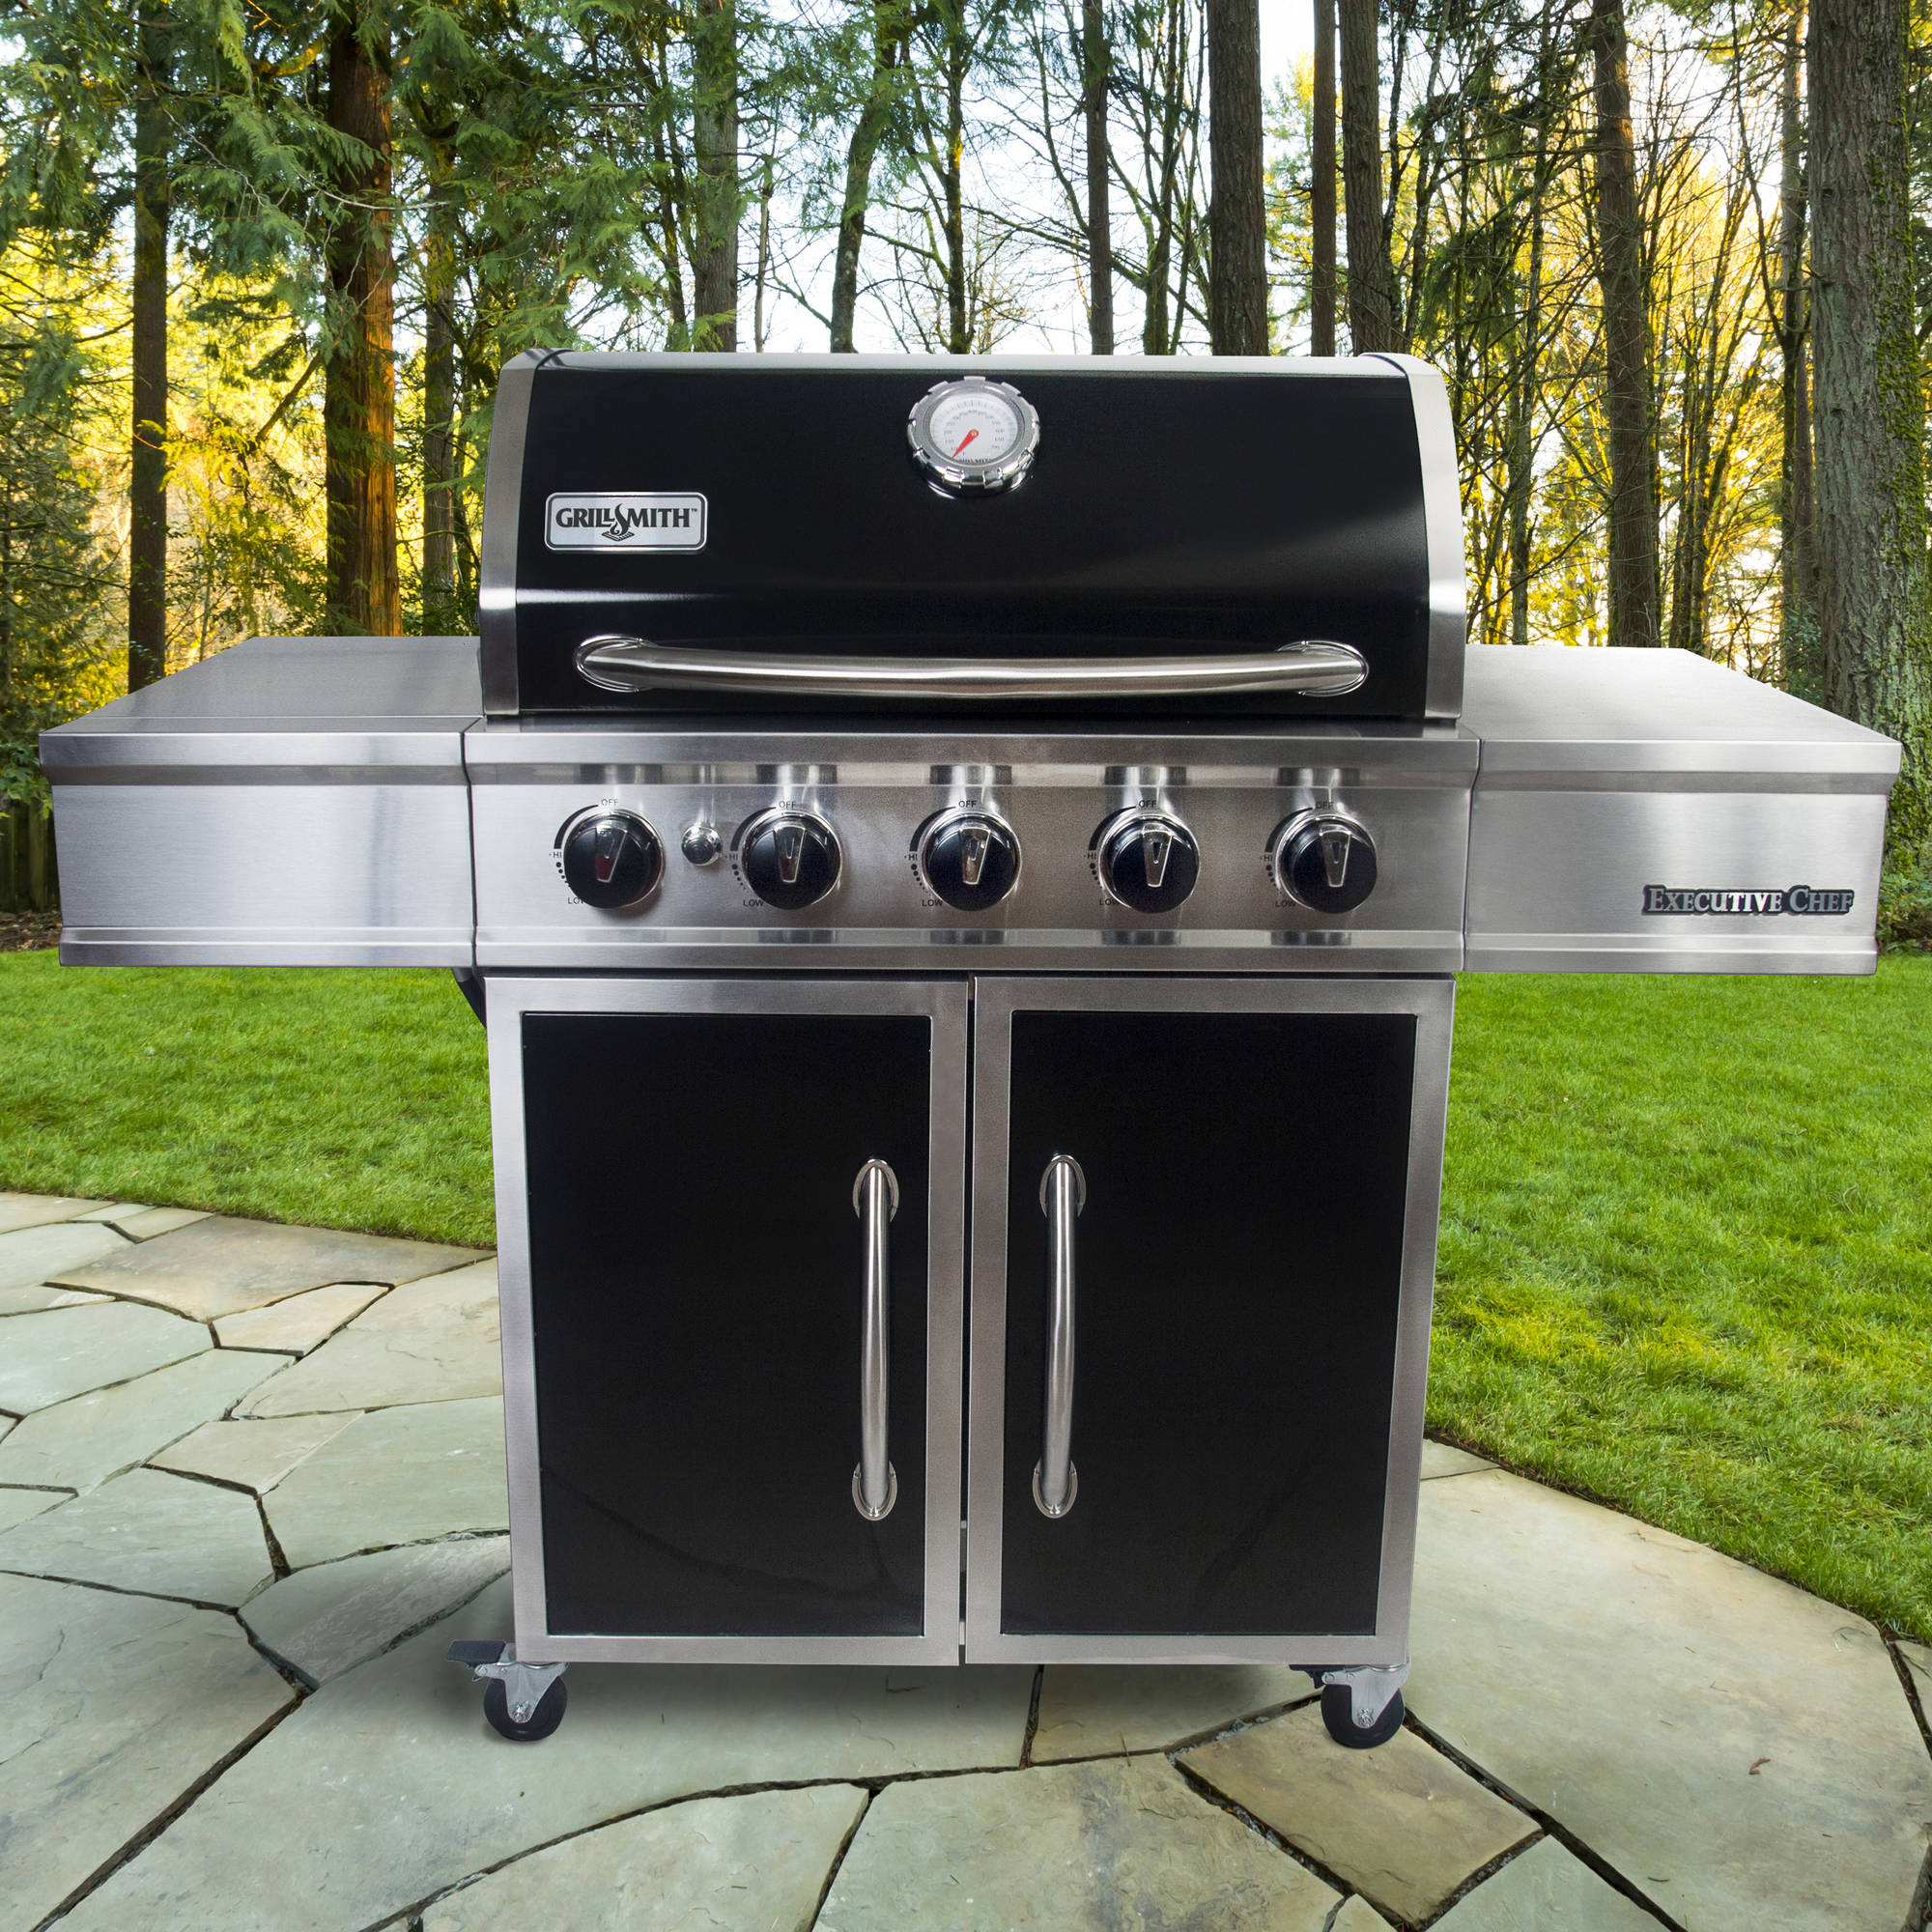 GrillSmith Executive Series 5-Burner Premium Gas Grill